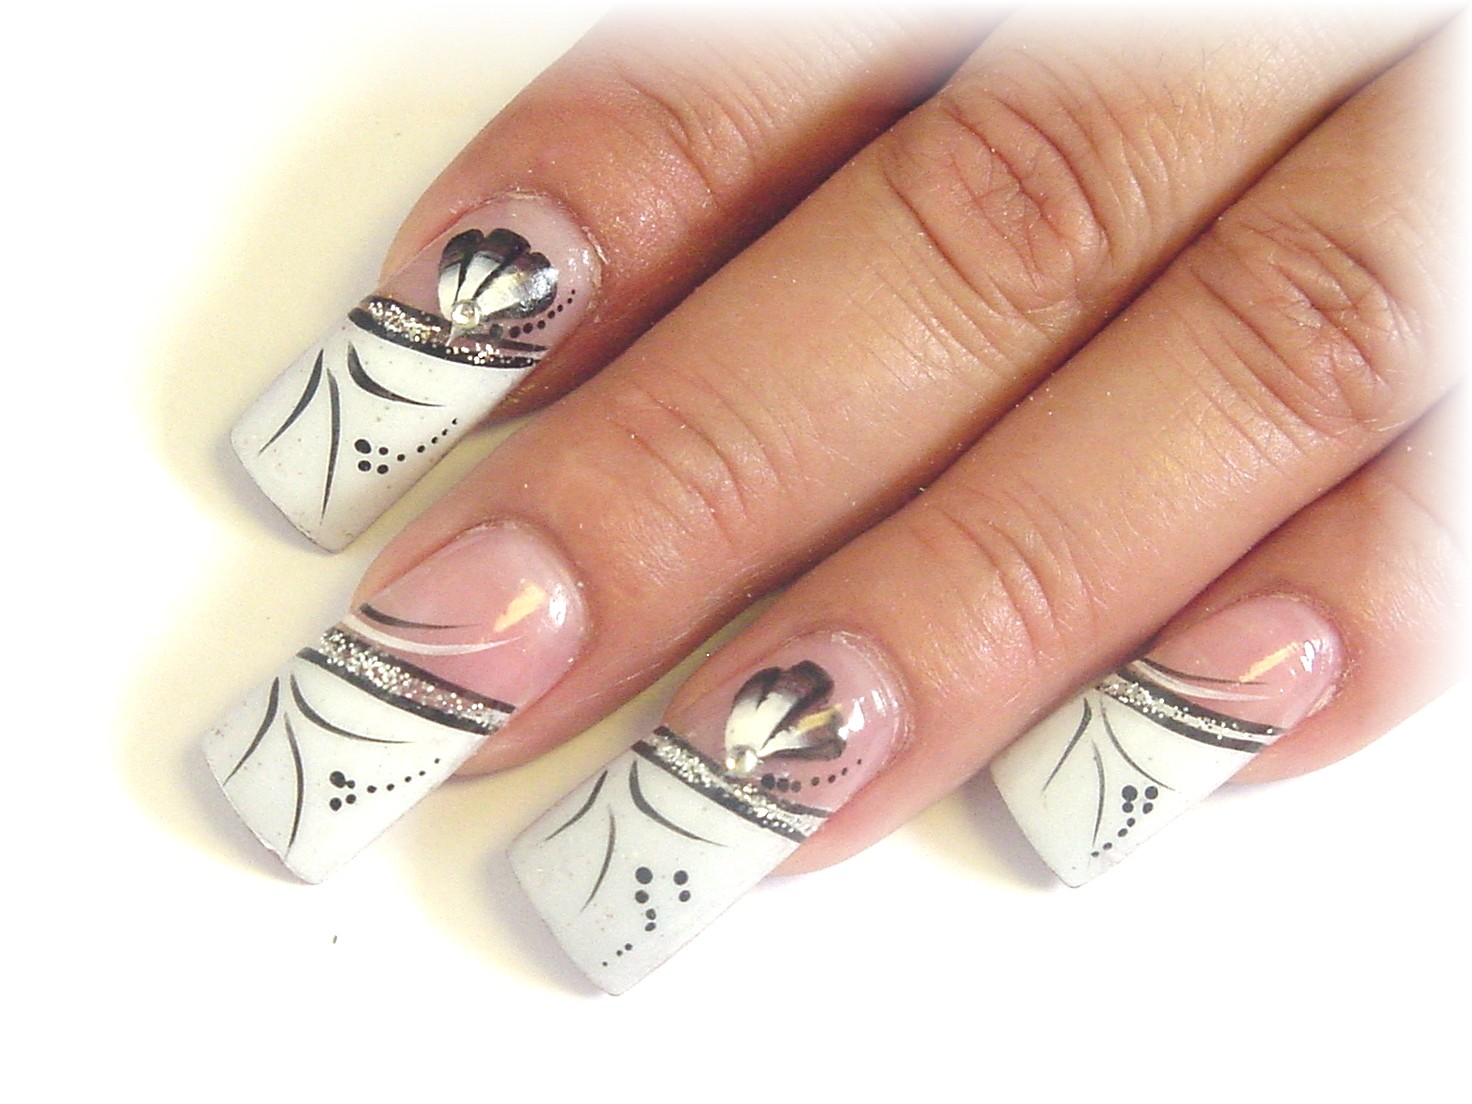 Are Easily Painted On Using A Long Striper Brush Every Other Nail Tiny Fans Enhance The Design Add Clear Acrylic Rhinestones For Added Bling